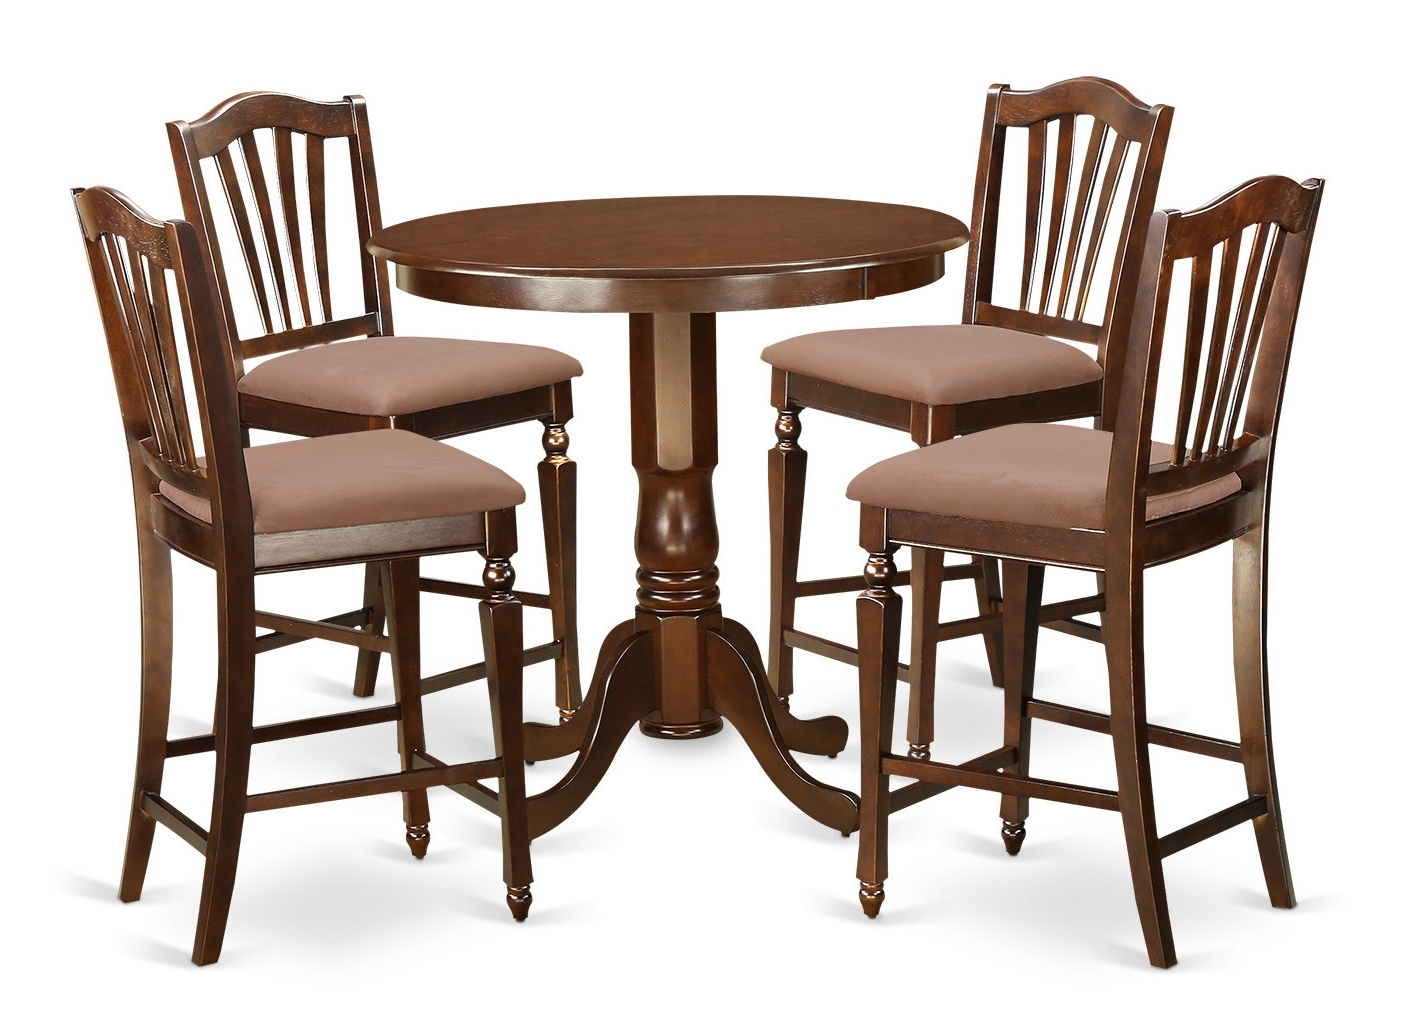 Wayfair With Regard To Jaxon 5 Piece Extension Counter Sets With Fabric Stools (View 23 of 25)